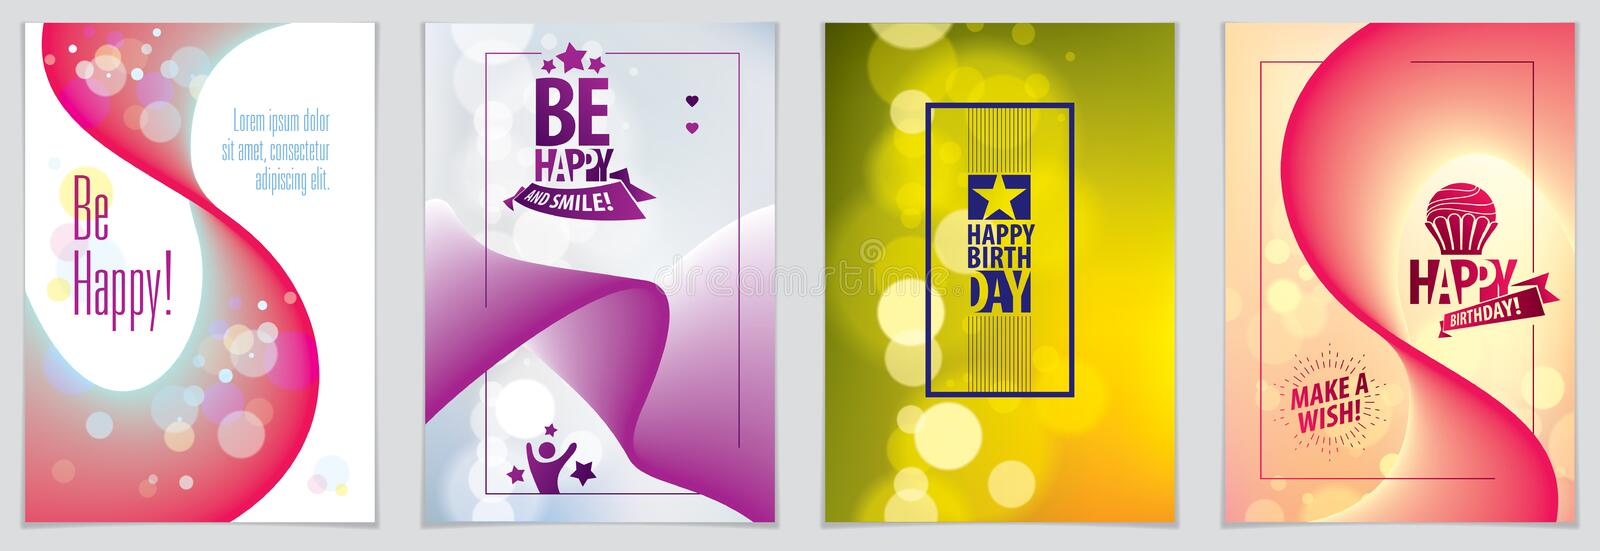 Birthday greeting card vector design. Includes lettering composition and balloons combined with wavy fluid colorful shape abstract. Backgrounds collection. A4 royalty free illustration